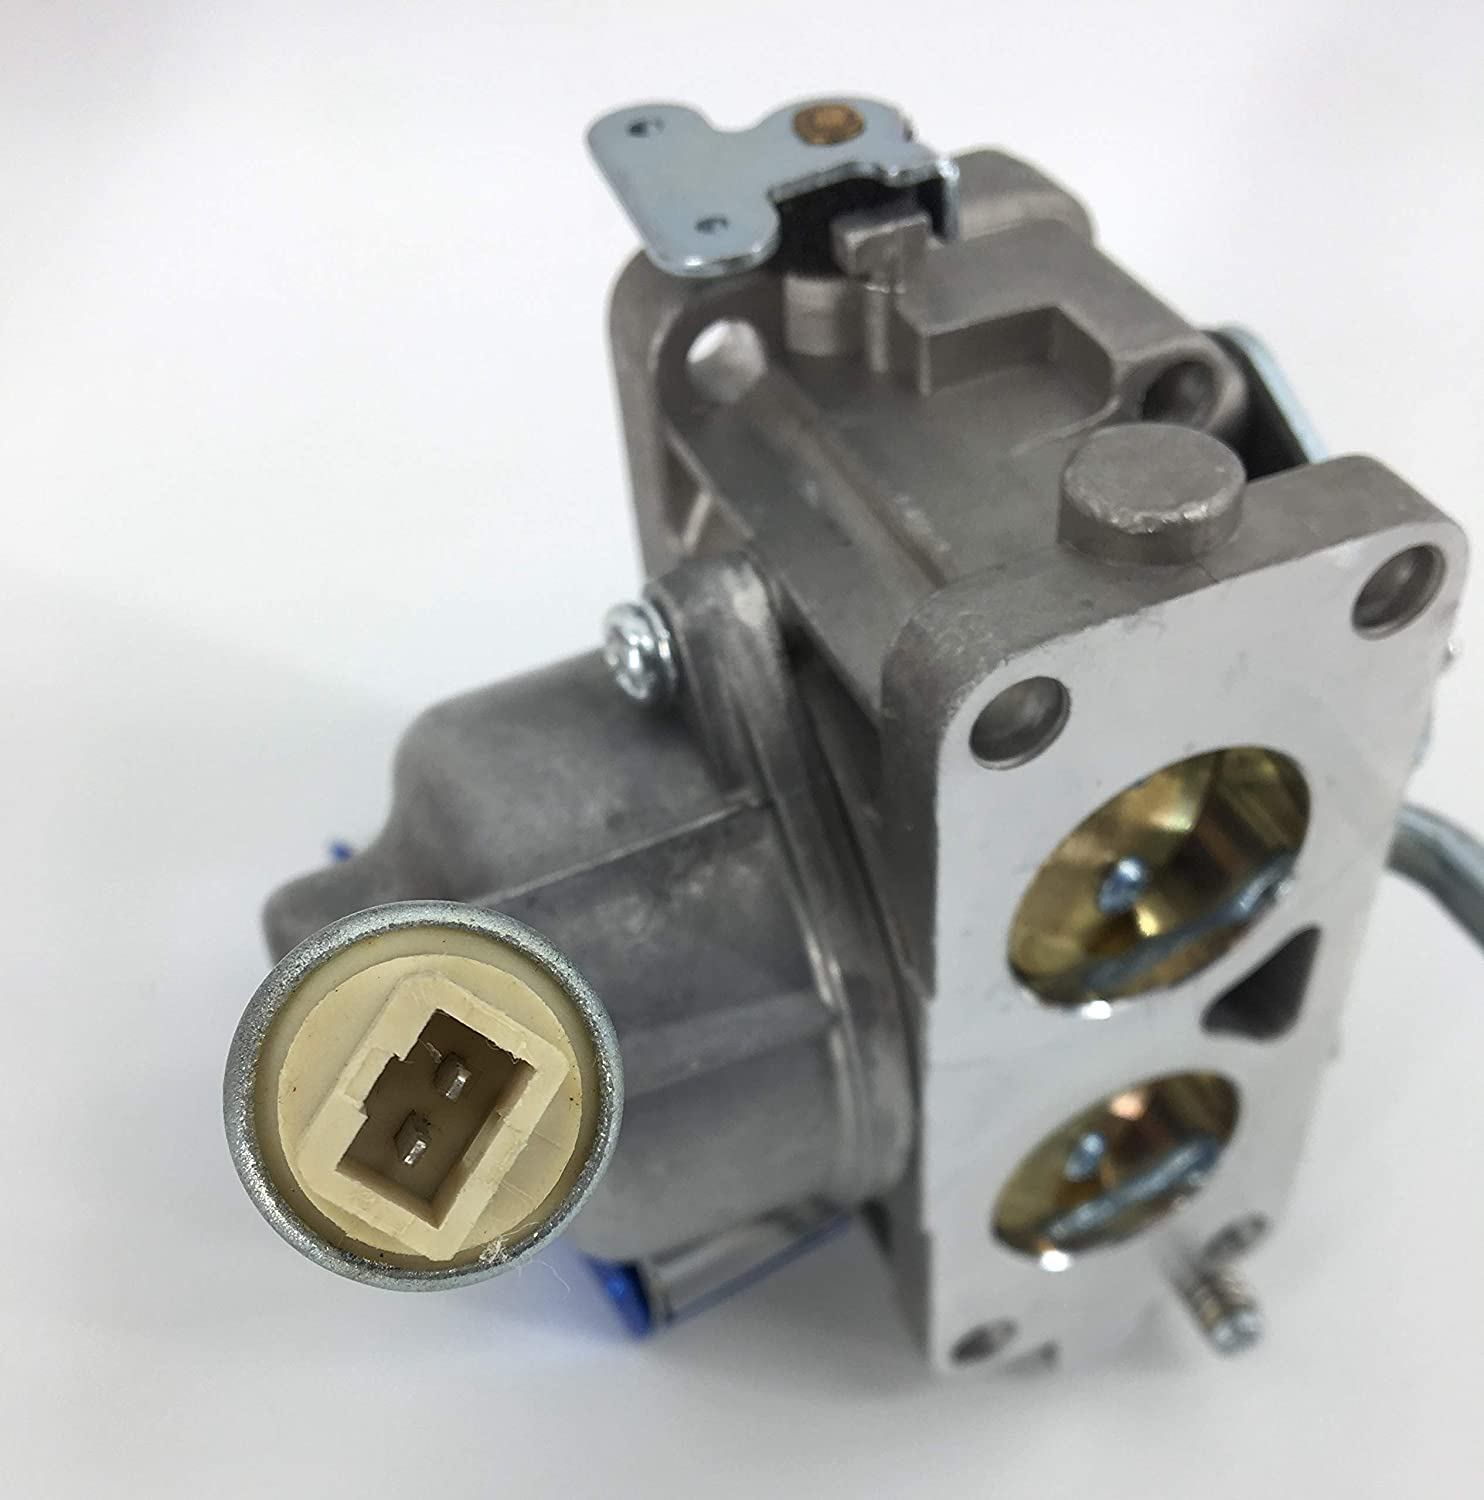 ltd Carburetor for Briggs /& Stratton 796258 796663 796259 792295 796997 Fits Most 40G000 40H000 44L000 Model 20Hp 21Hp 23Hp 24Hp 25Hp V Twin Engines An liang Industry co